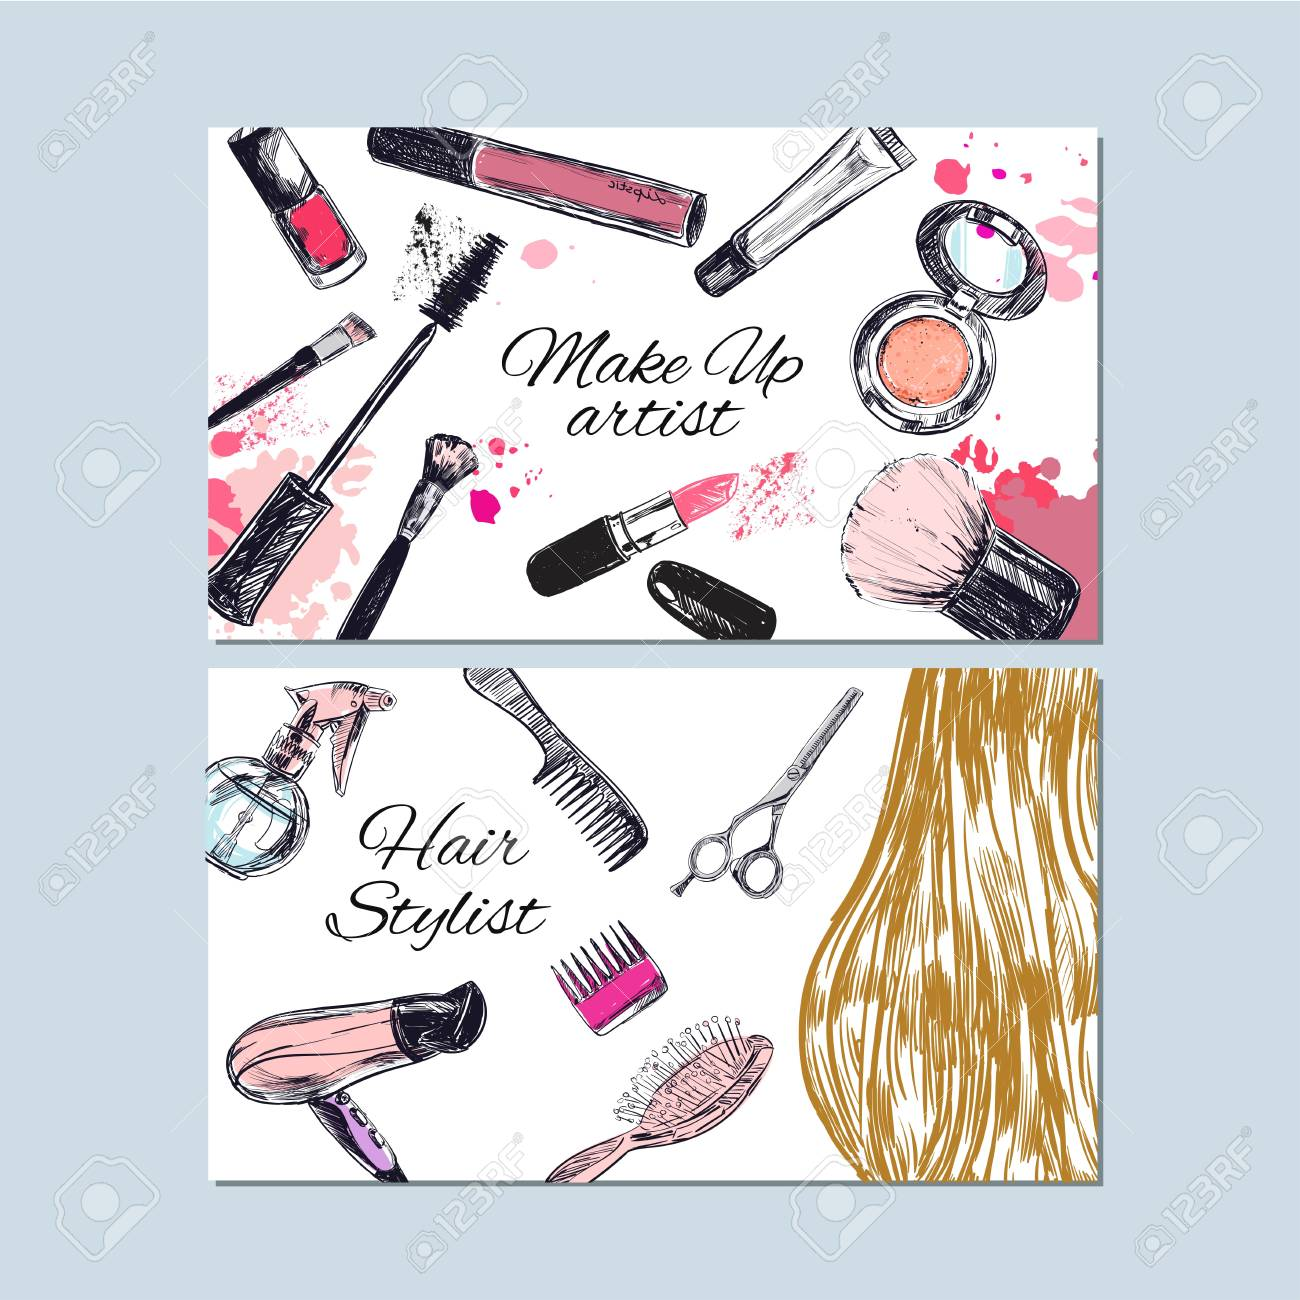 Make up artist and hair stylist business cards beauty and fashion make up artist and hair stylist business cards beauty and fashion vector hand drawn flashek Images